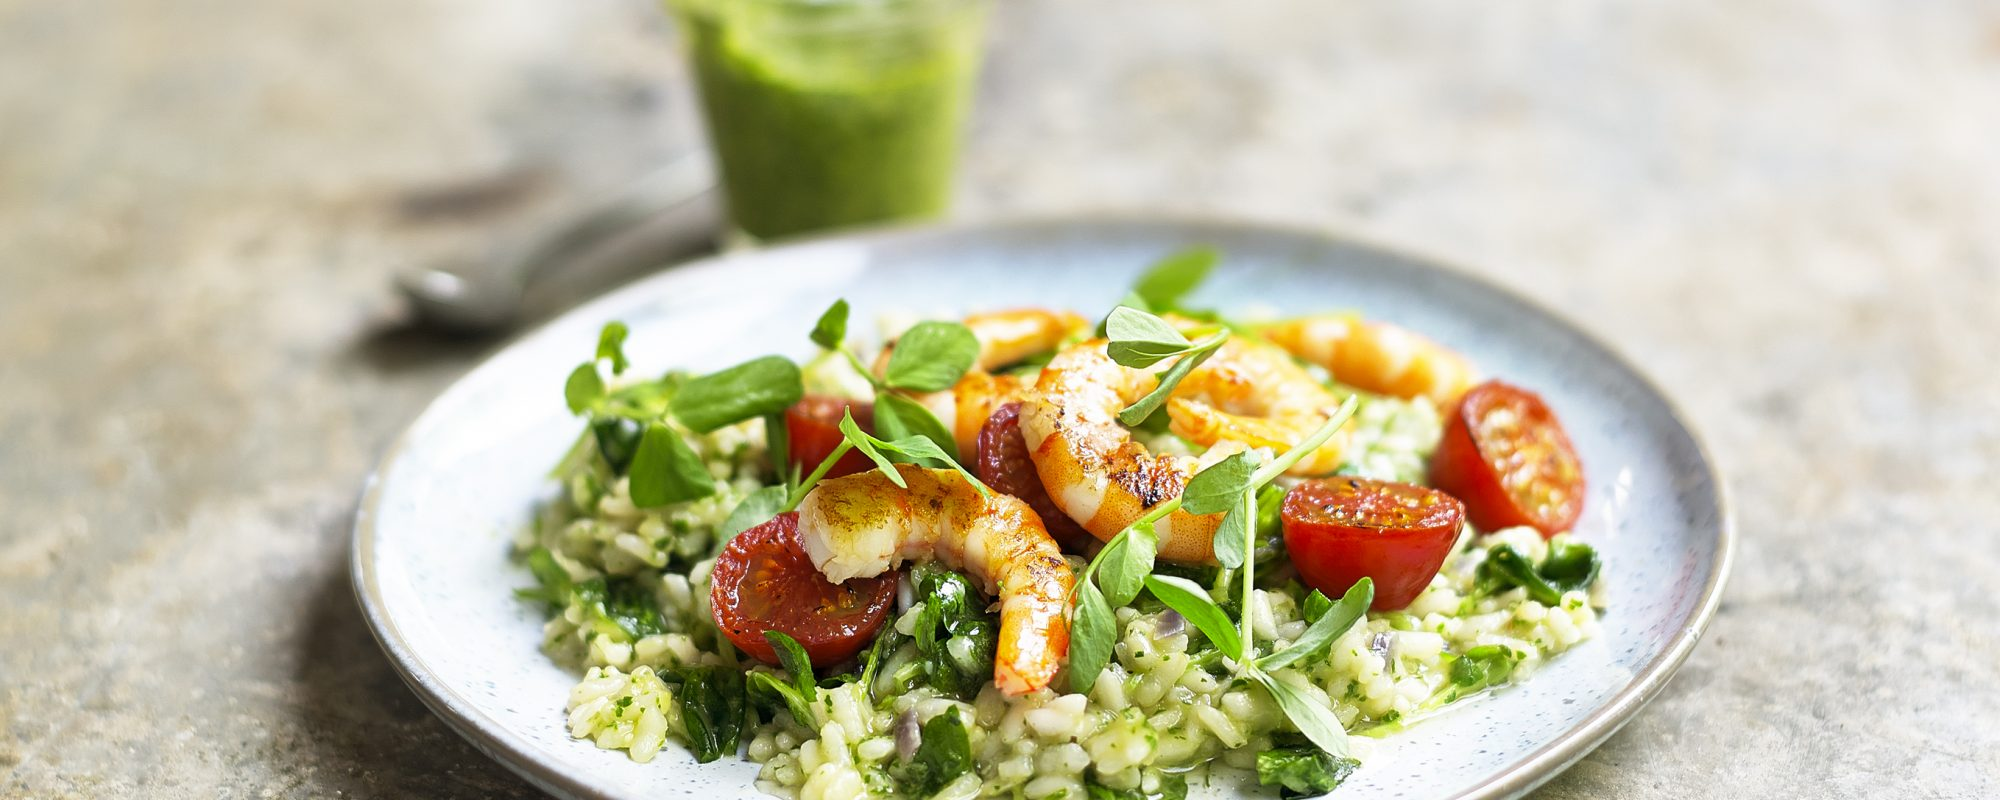 Cressto Risotto with Prawns & Pea Shoots